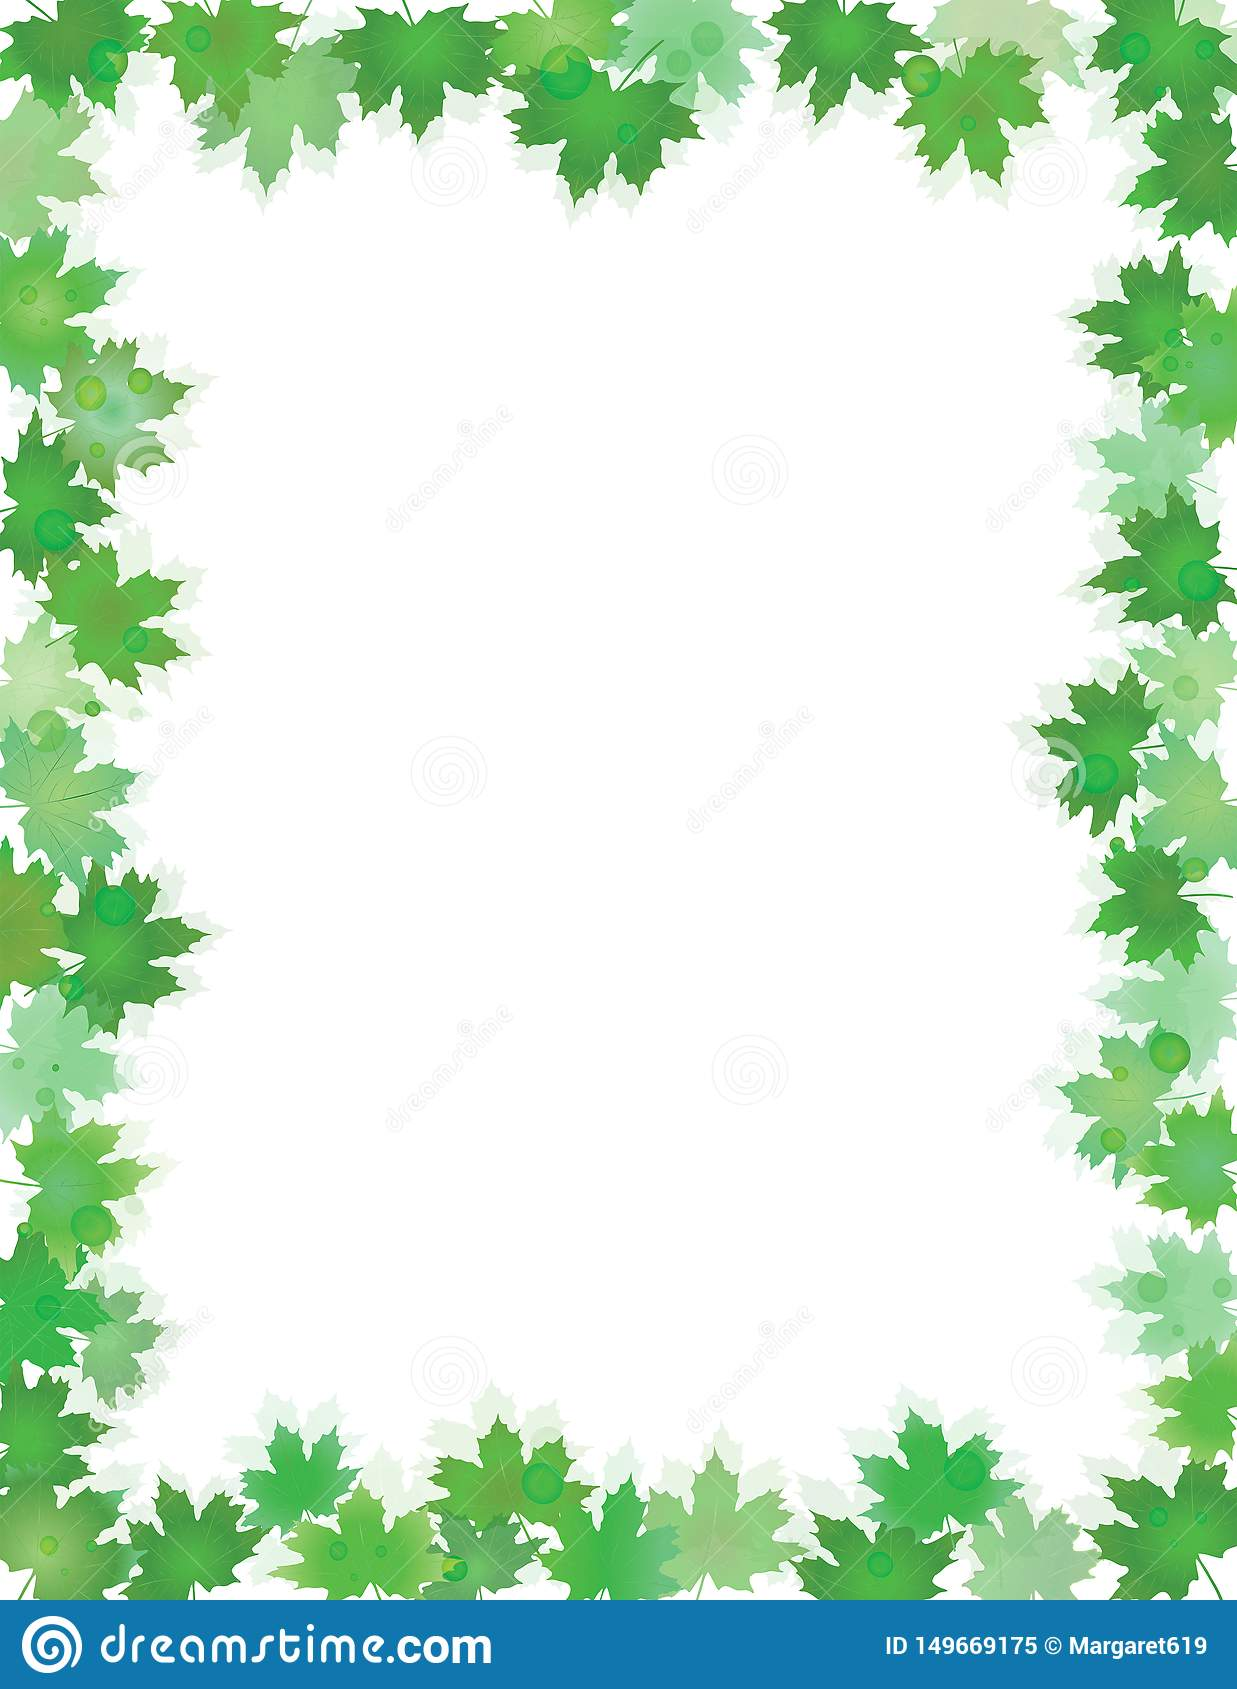 Green leaves border isolated on White with copy space.